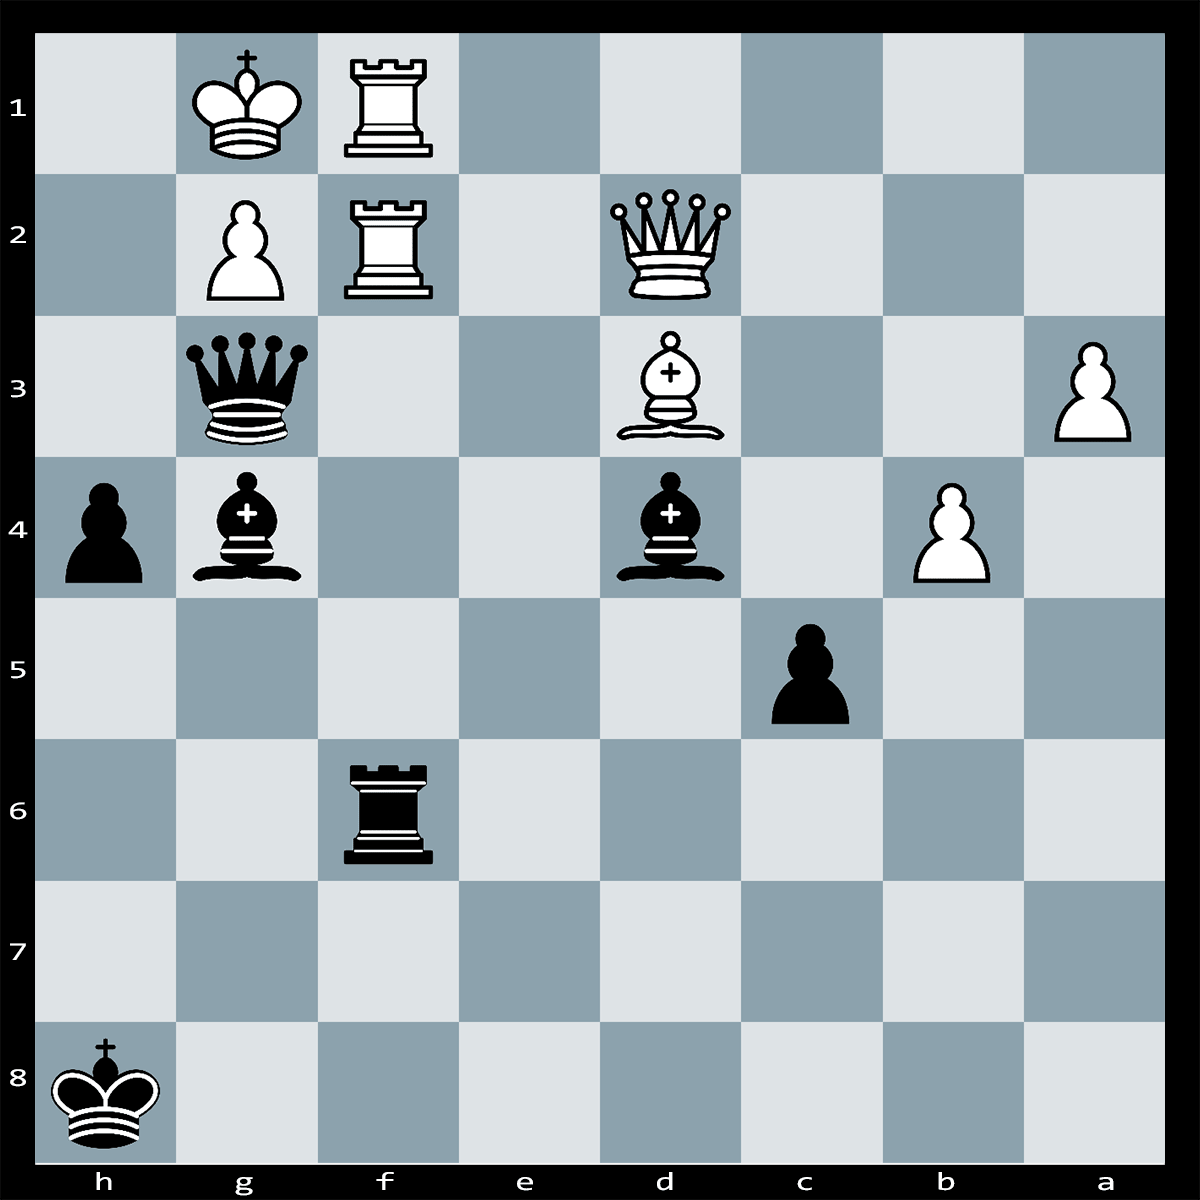 Find the Best Move, Black to Play | Chess Puzzle #228